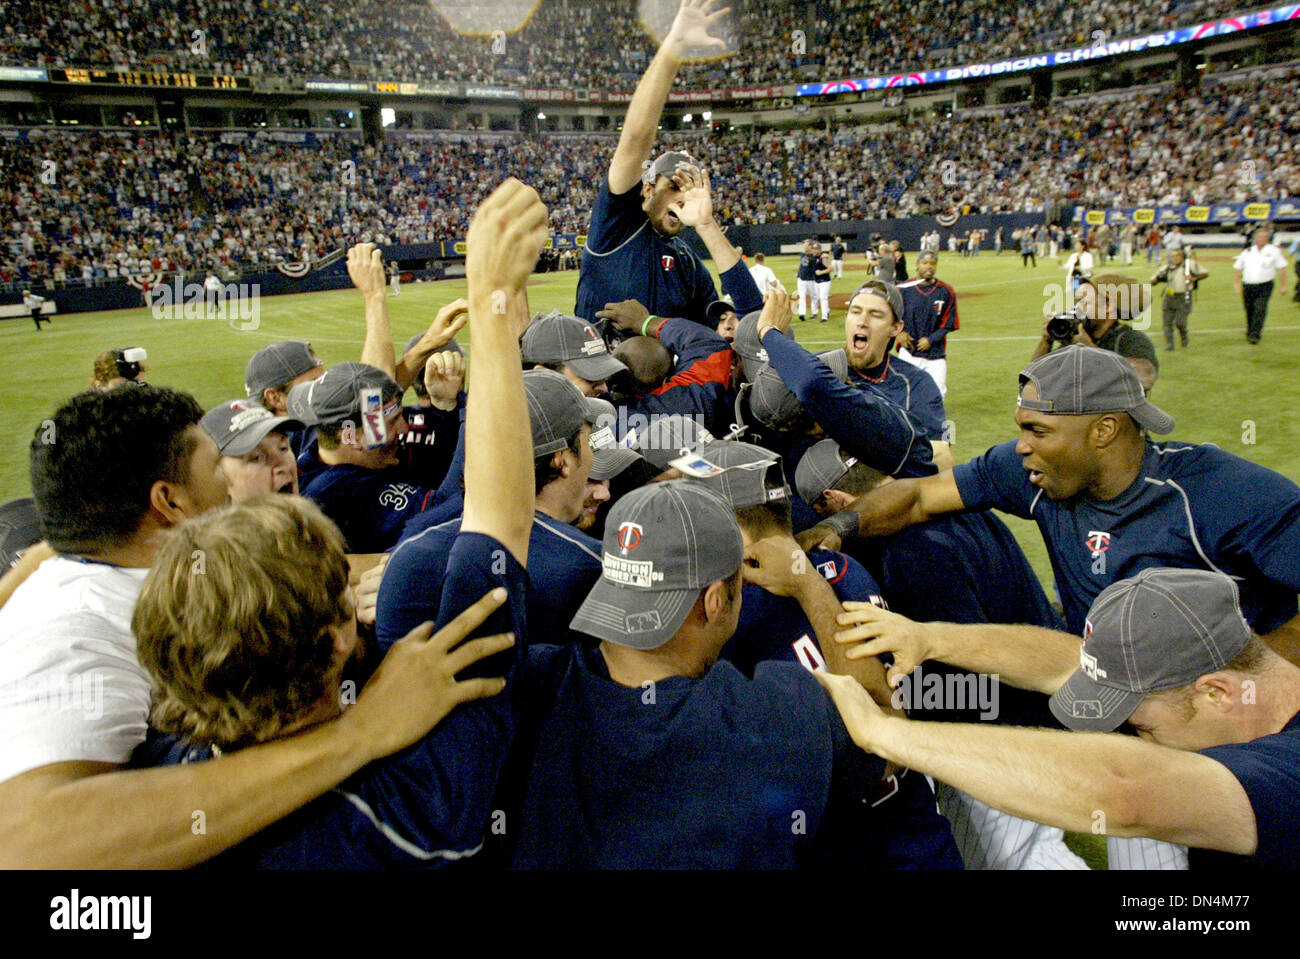 Oct 01, 2006; Minneapolis, MN, USA; The Minesota Twins celebrate winning their division in centerfield after Detroit's loss to Kansas City during the conclusion of their game against the Chicago White Sox at the Metordome in Minneapolis, Minnesota, Sunday, October 1, 2006. The Twins defeated the White Sox 5-1. Mandatory Credit: Photo by Marlin Levison/Minneapolis Star T/ZUMA Press. Stock Photo